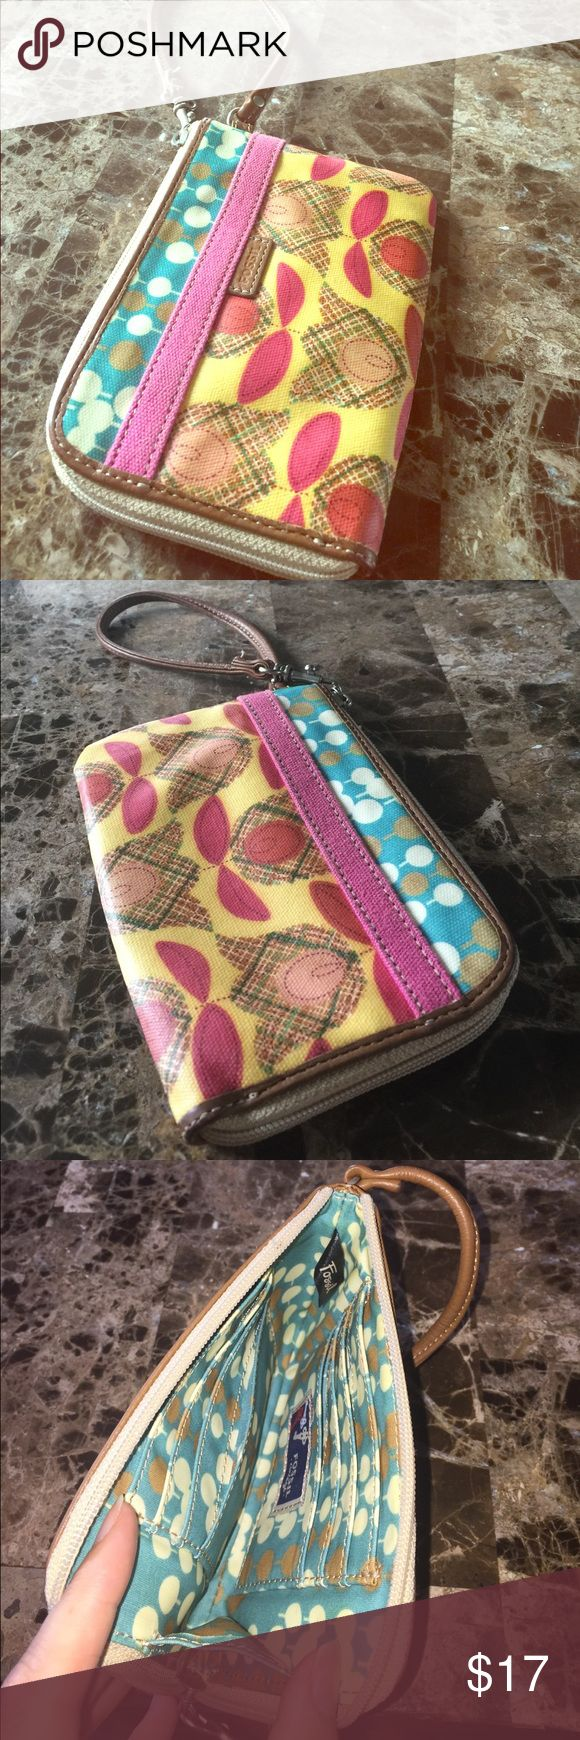 "Fossil Wristlet Grab this wristlet instead of your purse for your bare essentials and just go!! Light and springy but durable. Size is 6 1/2"" across by 4 1/2"" wide. Fossil Bags Clutches & Wristlets"